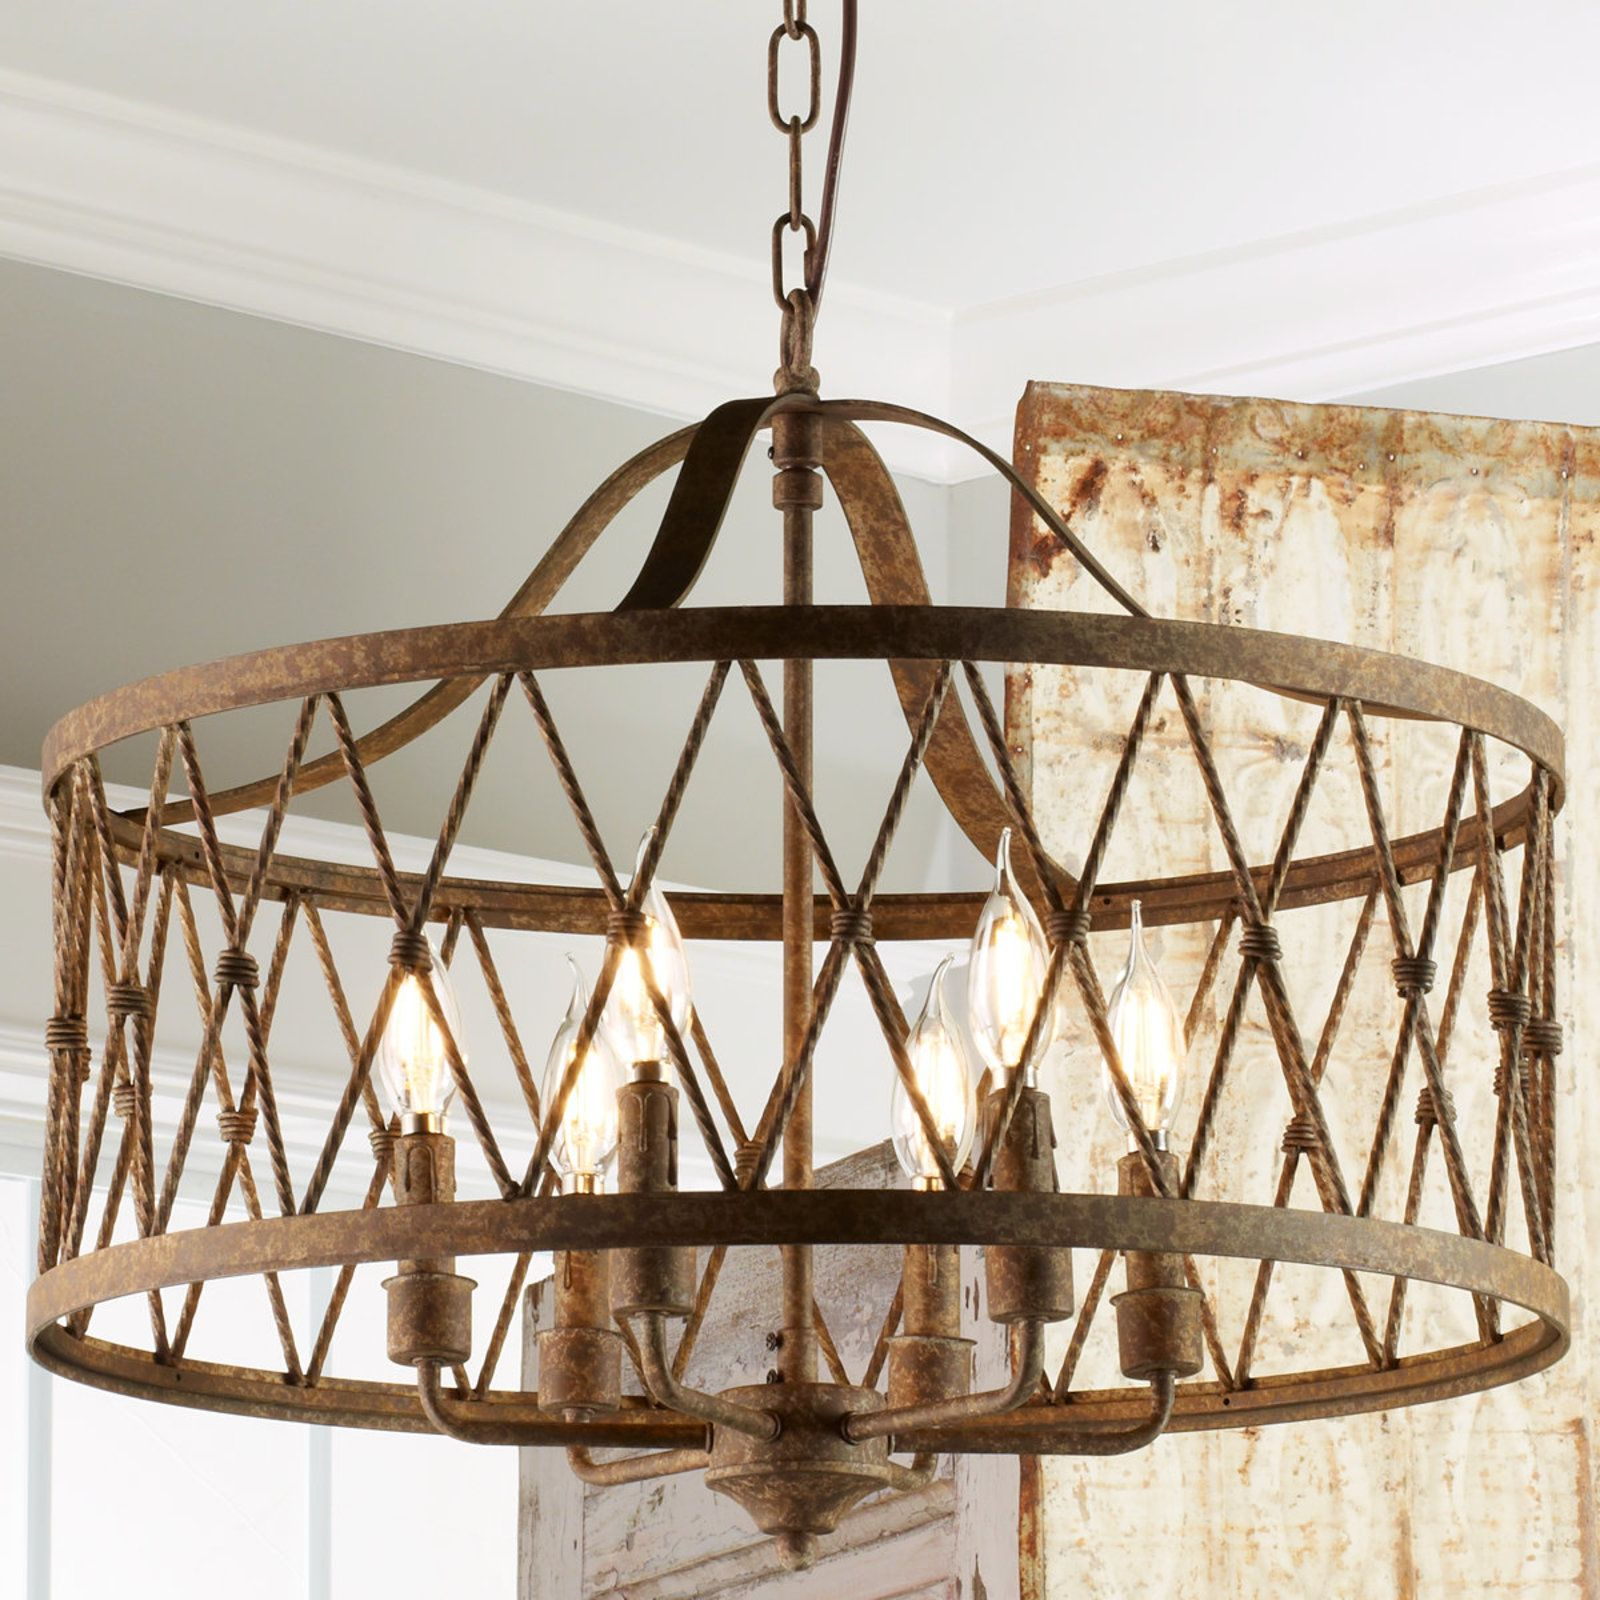 Faded Rustic Drum Cage Chandelier 6 Light Drum Shade